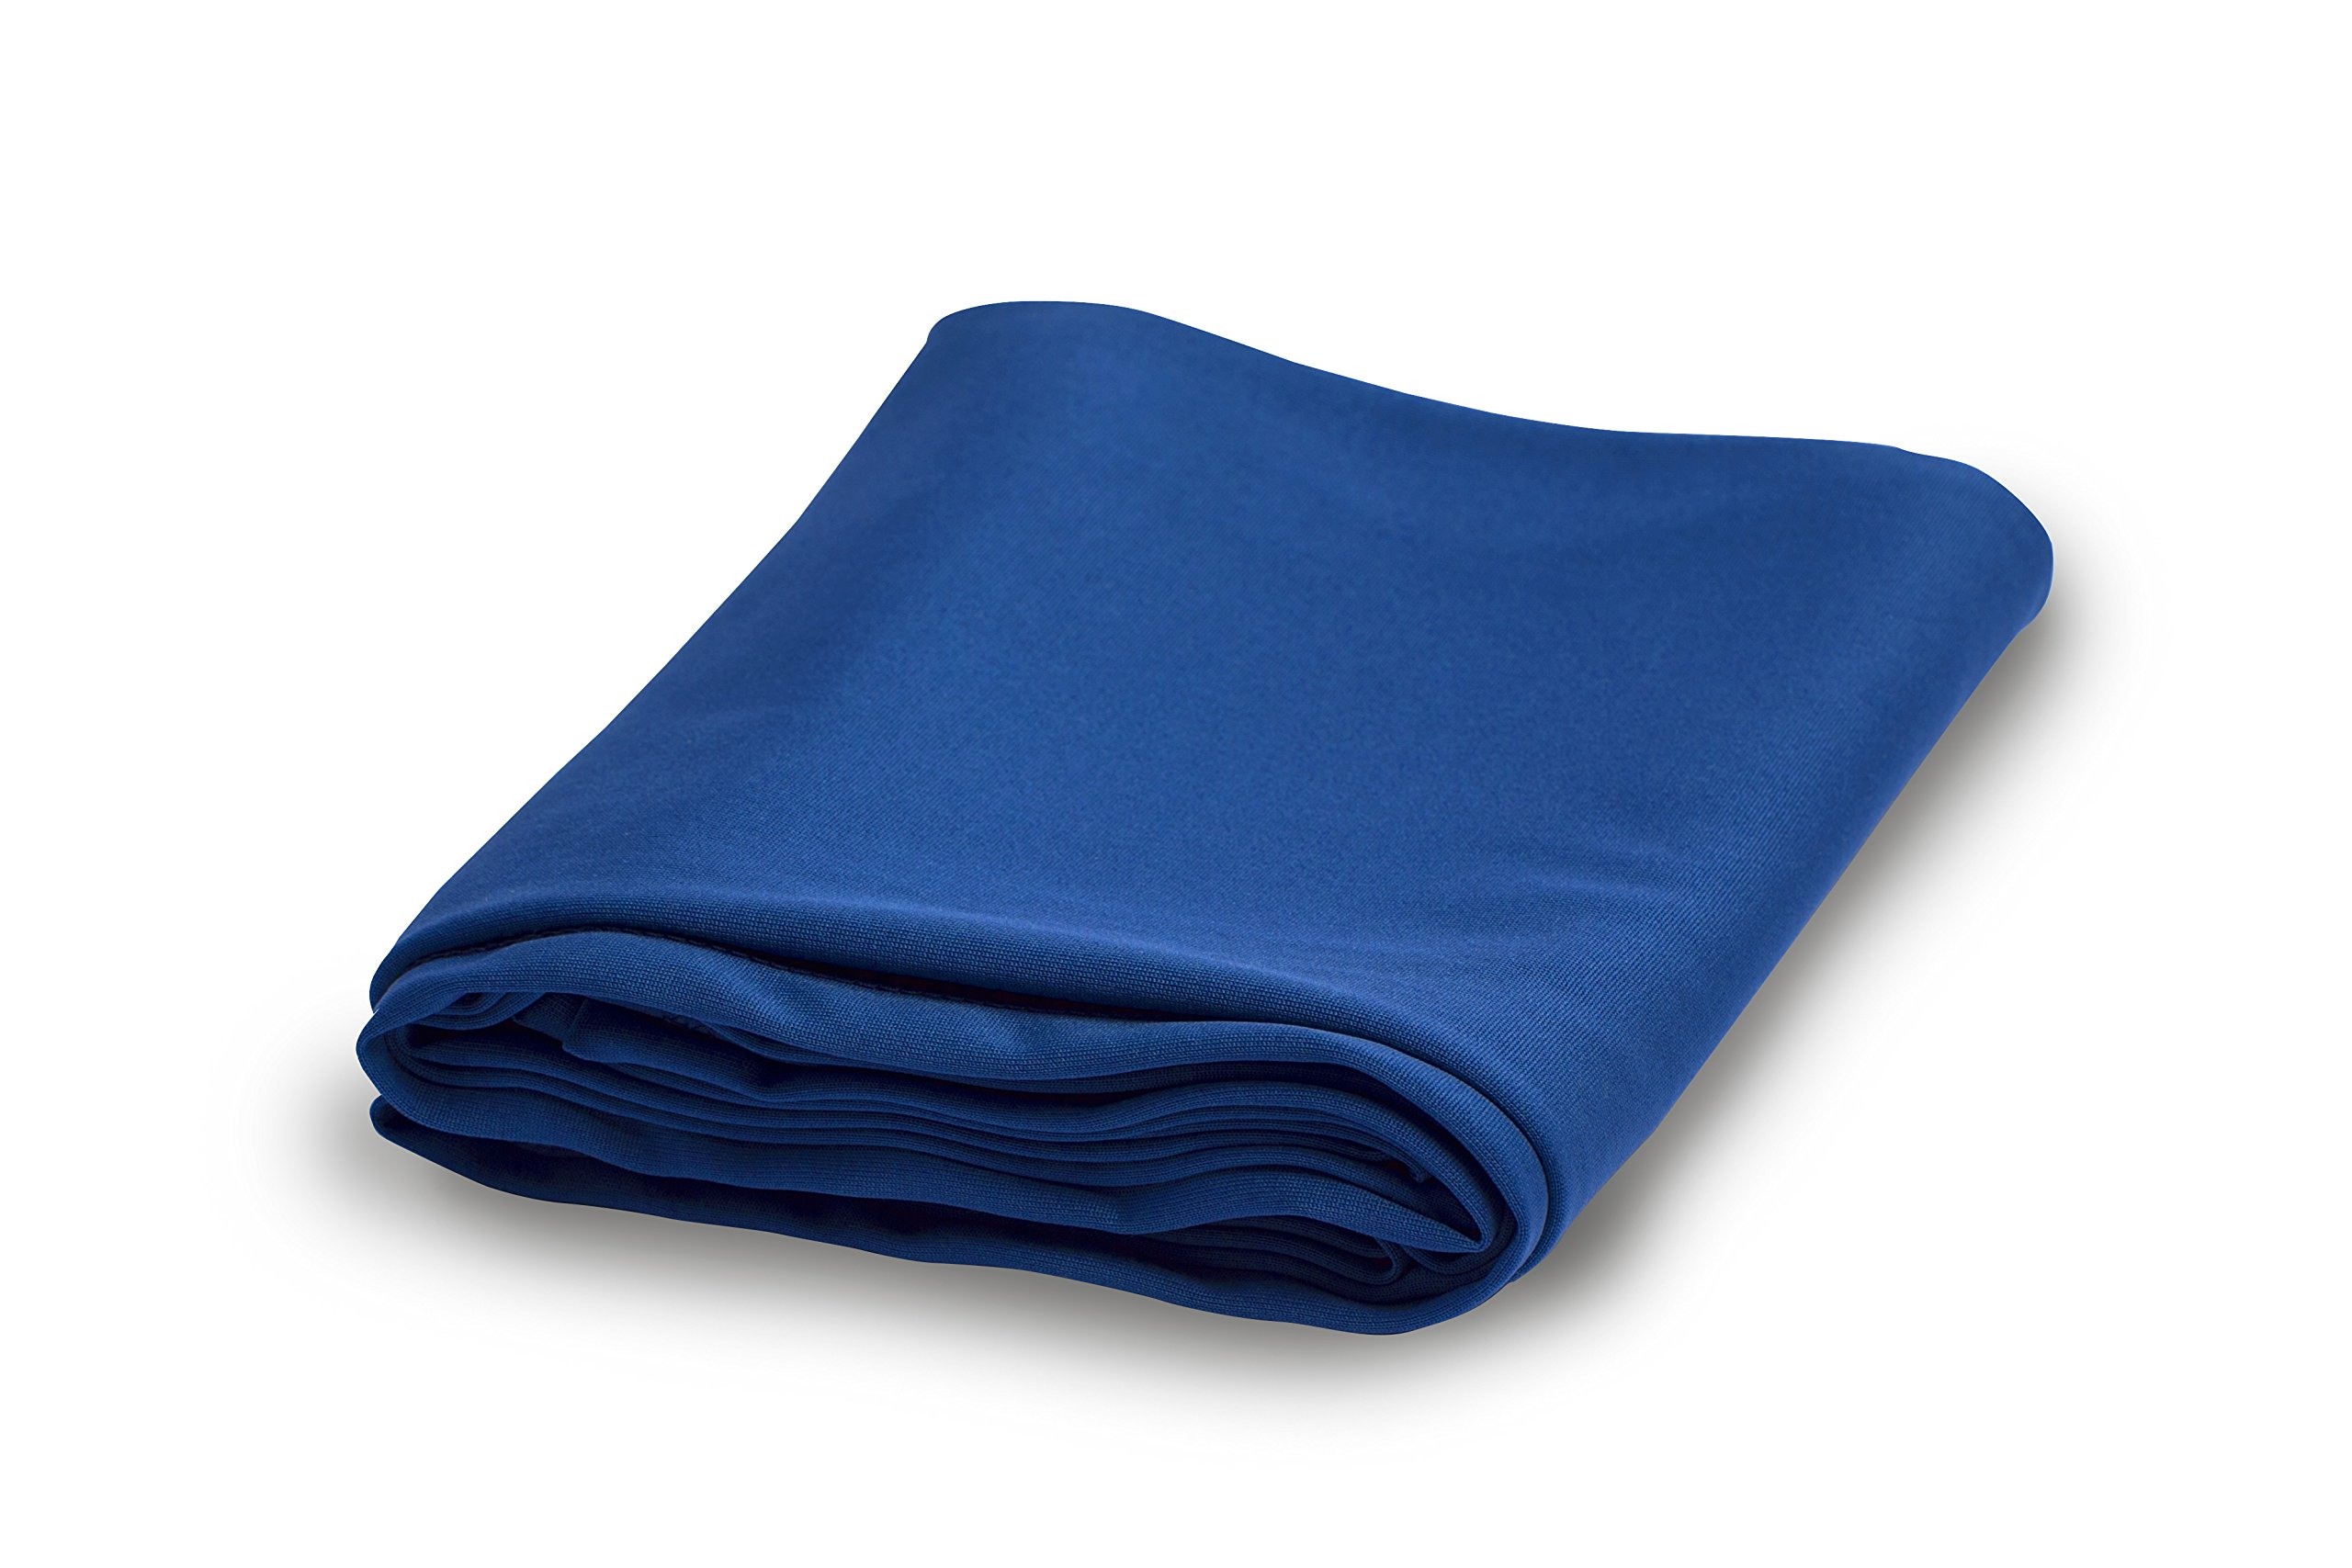 Extreme Ultralight Travel and Sports Towel. High Tech Better than Microfiber. Compact Quick Dry Lightweight Antibacterial Towels, 28''x34'', Extreme Royal Blue by Discovery Trekking Outfitters